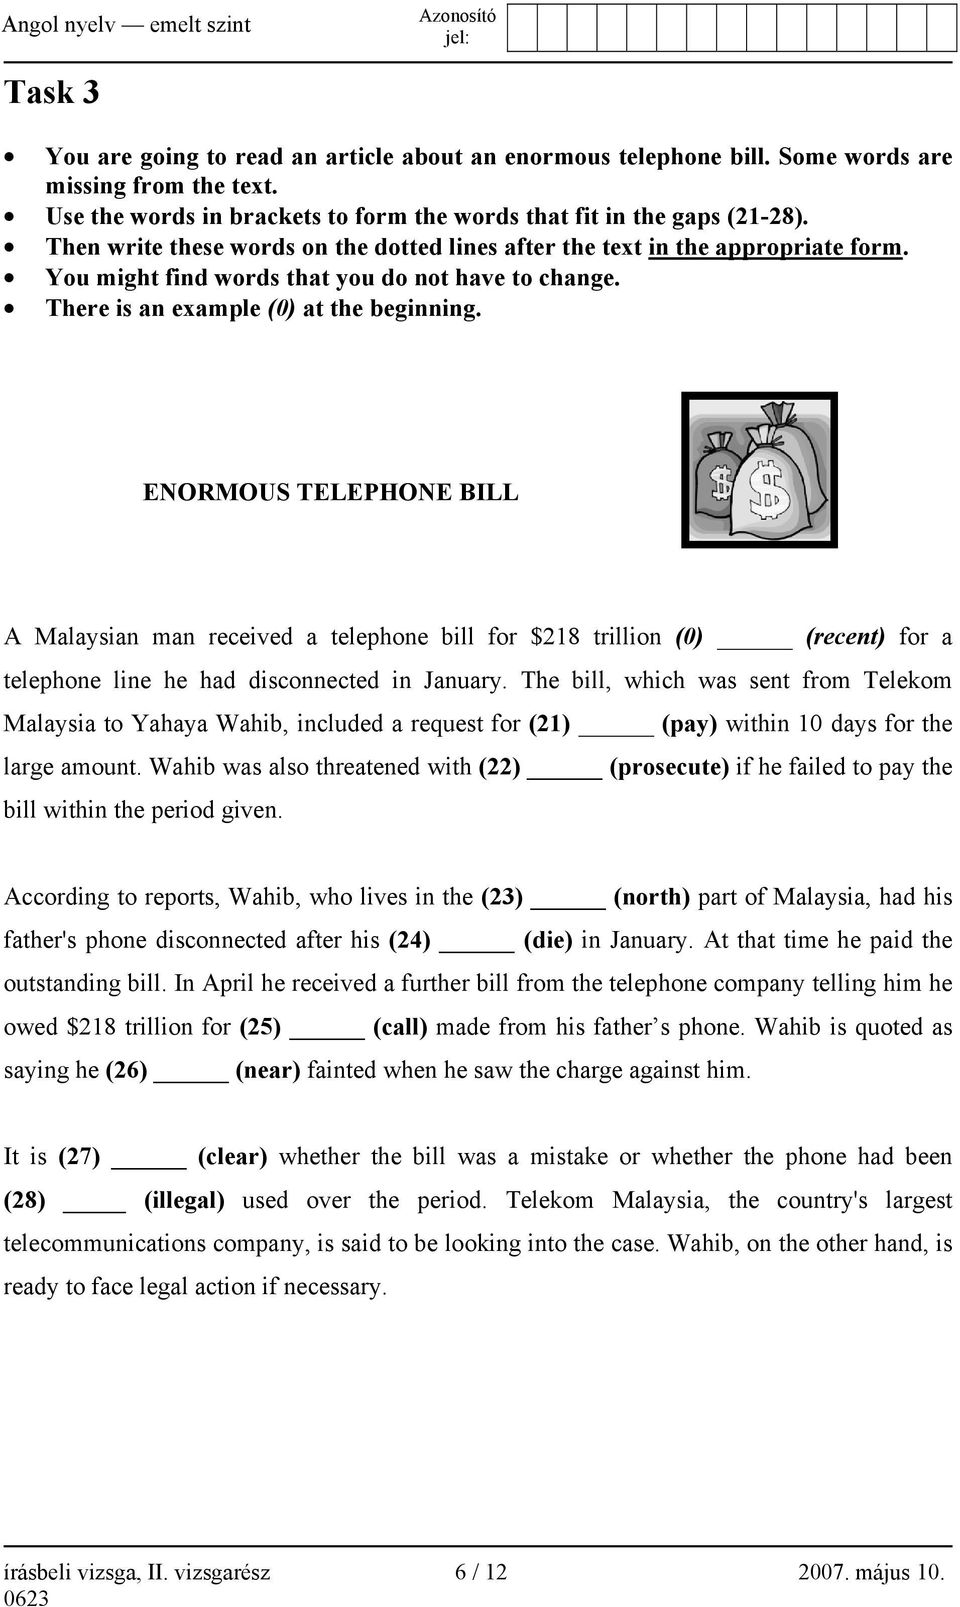 ENORMOUS TELEPHONE BILL A Malaysian man received a telephone bill for $218 trillion (0) (recent) for a telephone line he had disconnected in January.